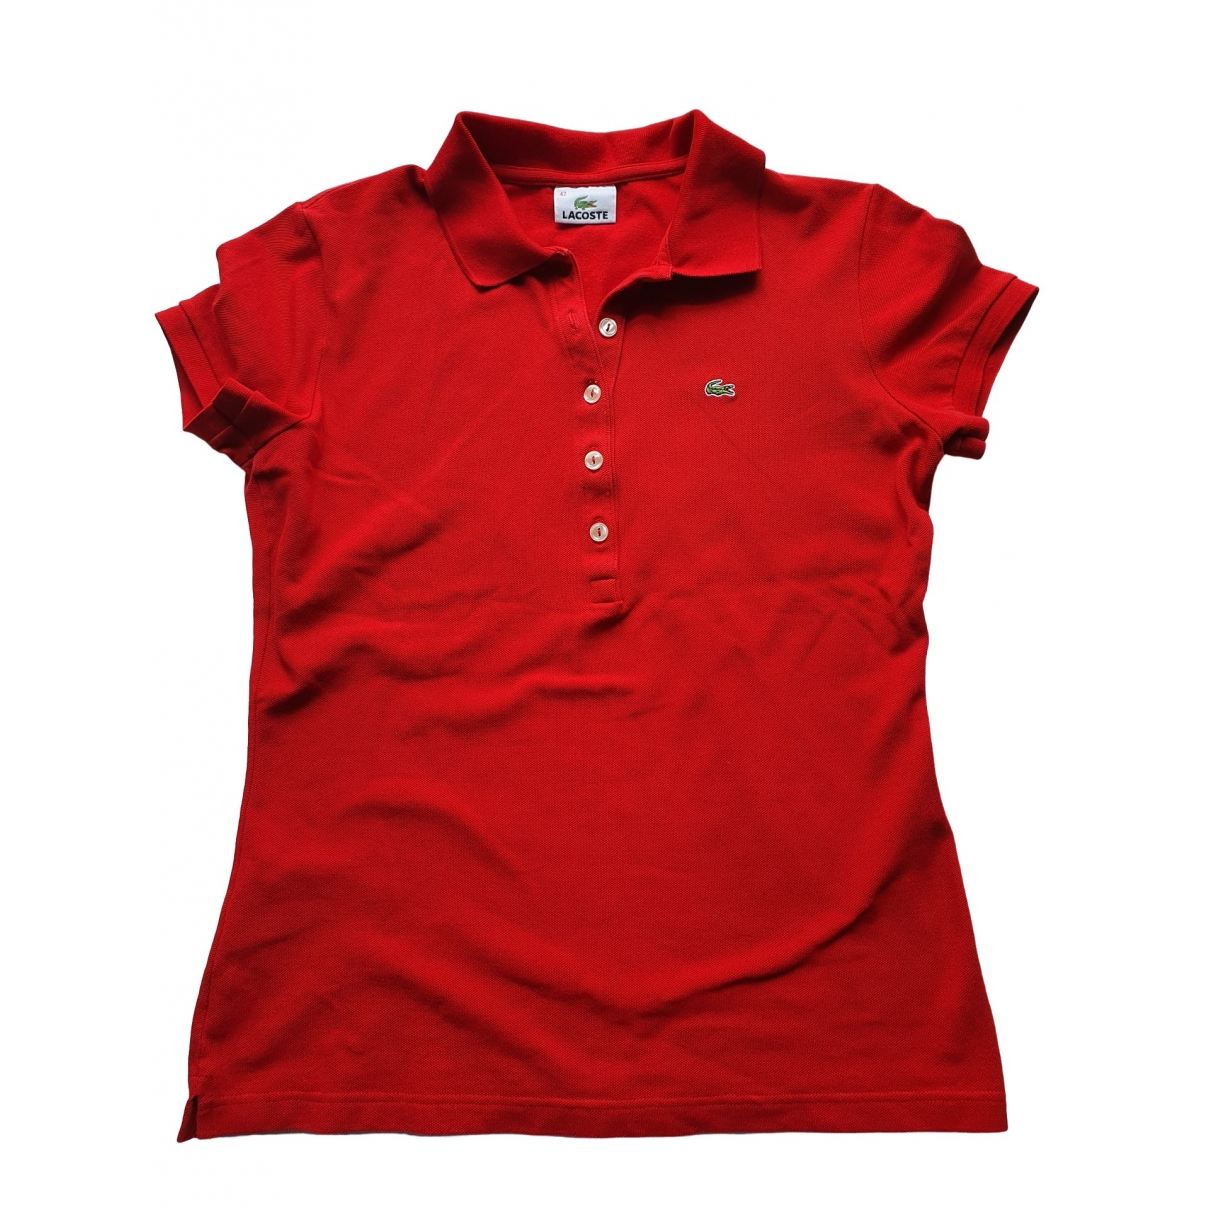 Lacoste \N Red Cotton  top for Women 32 FR